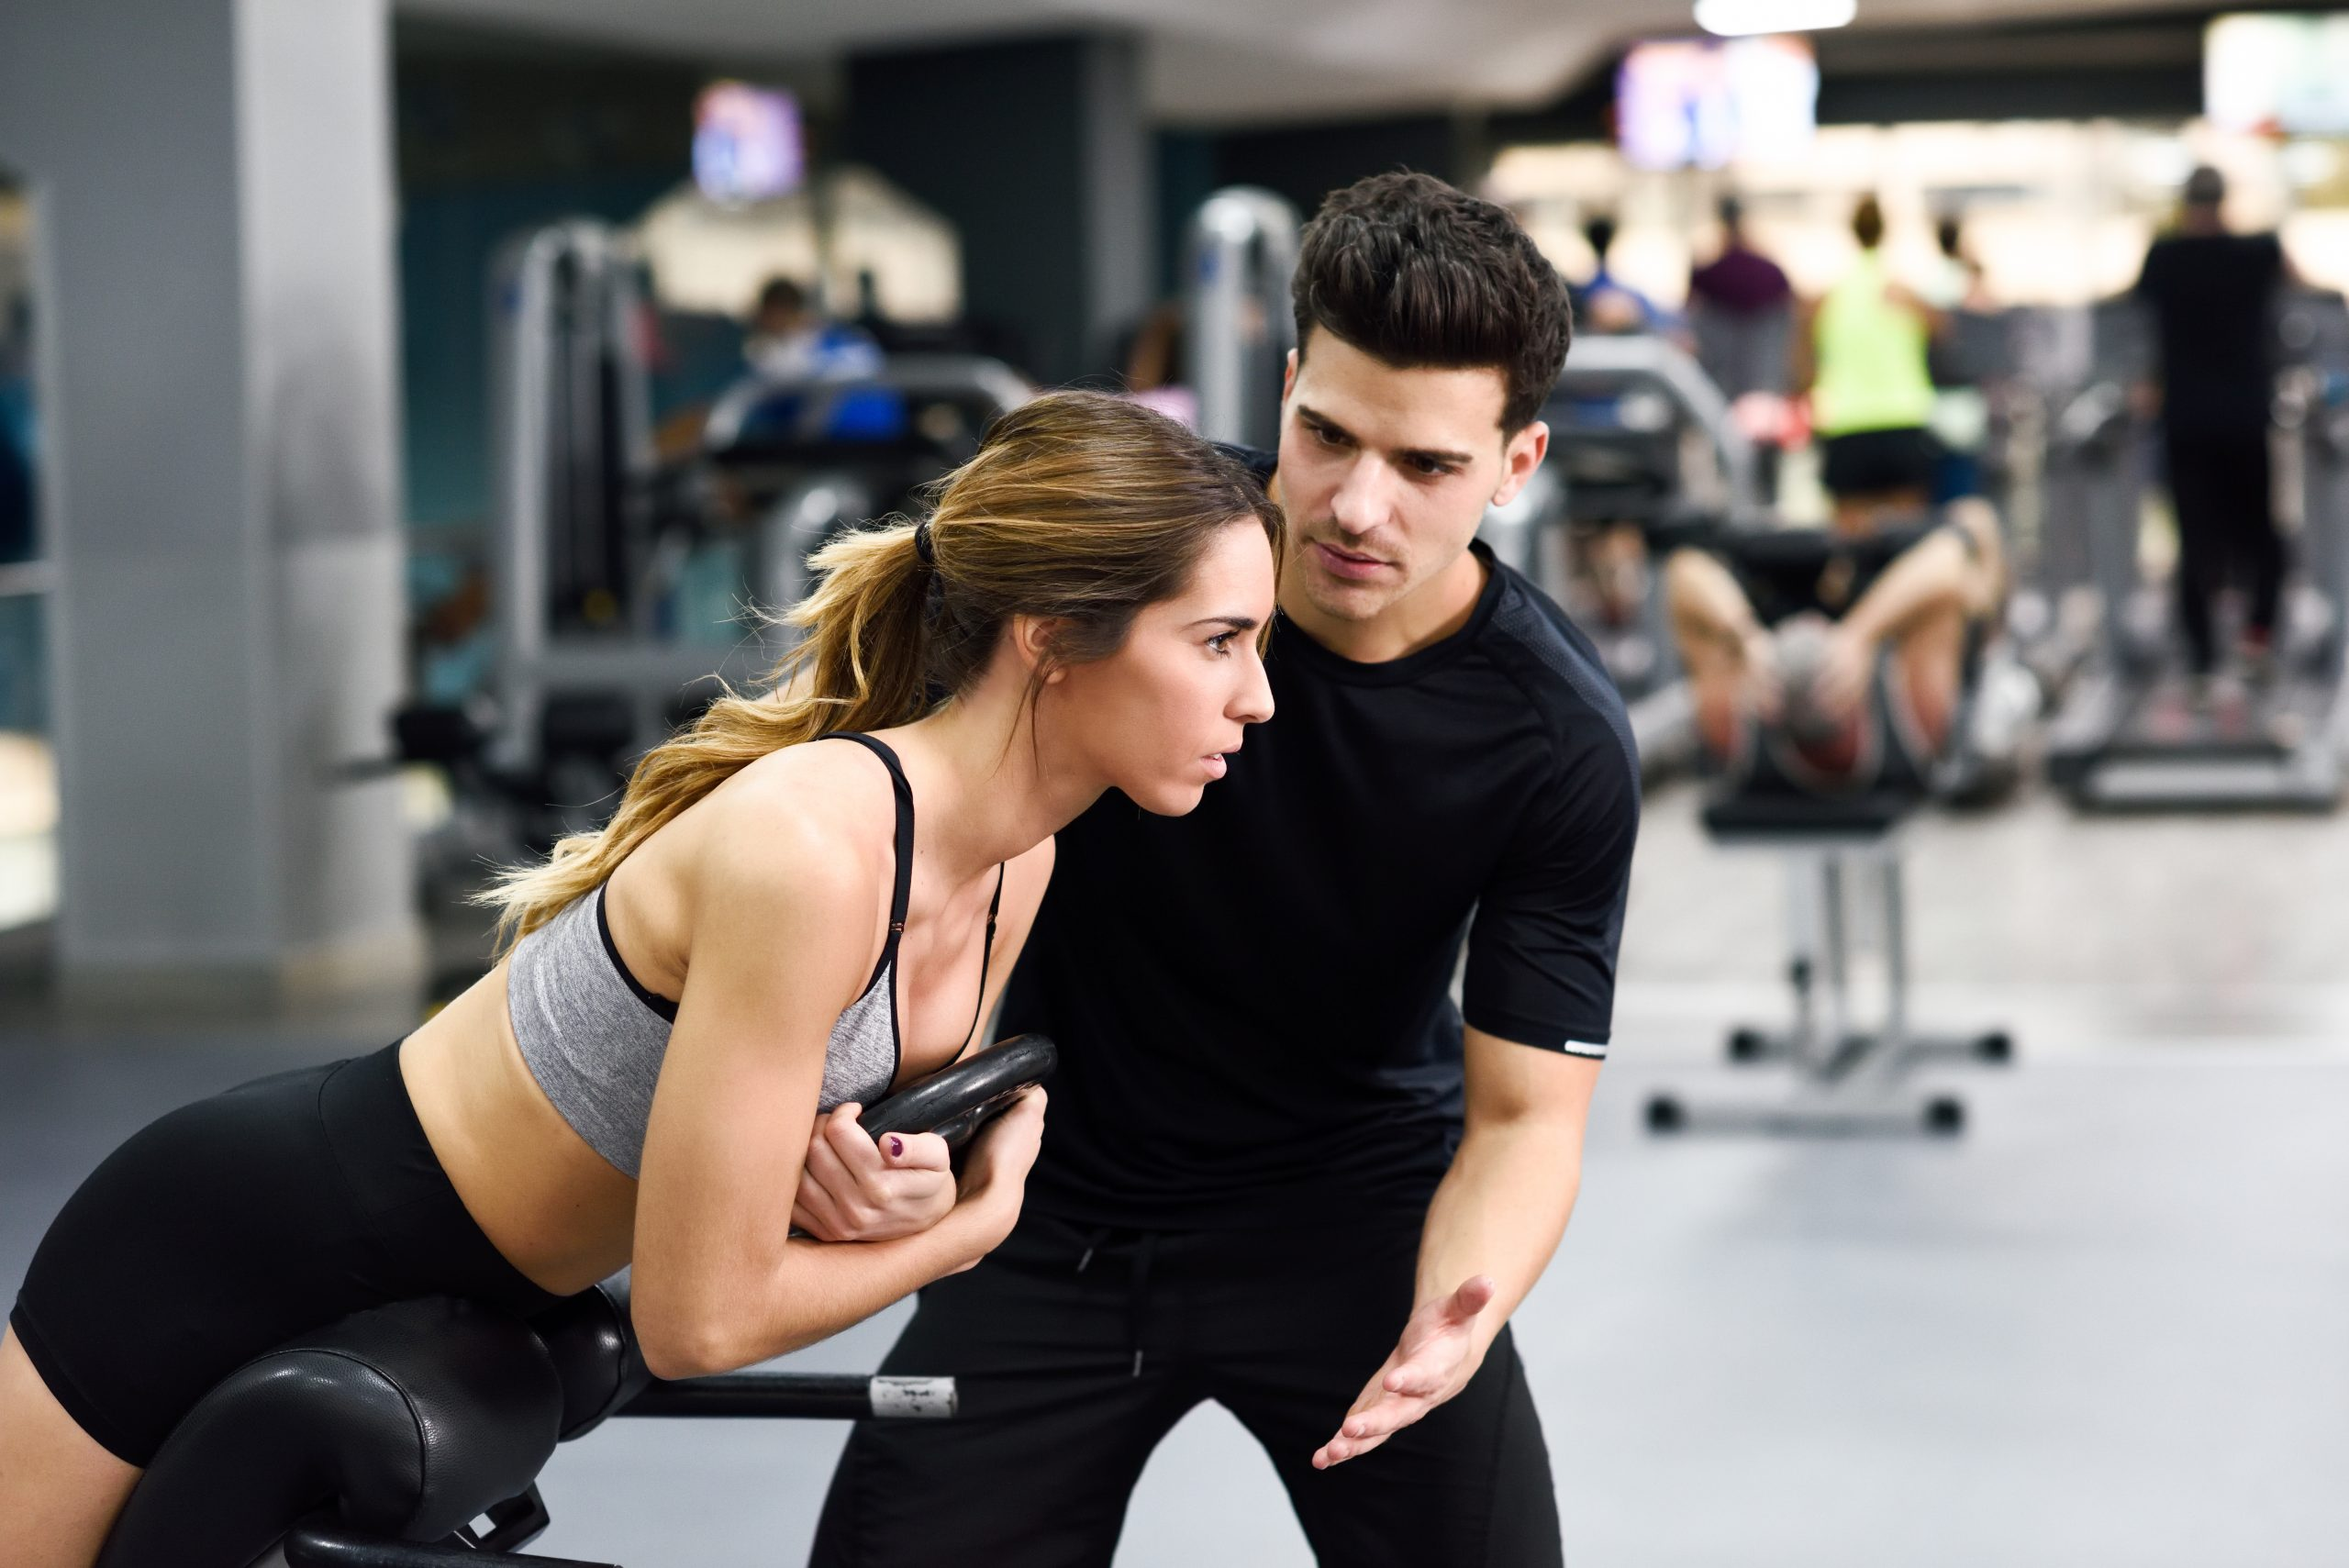 Personal trainer helping young woman lift weights